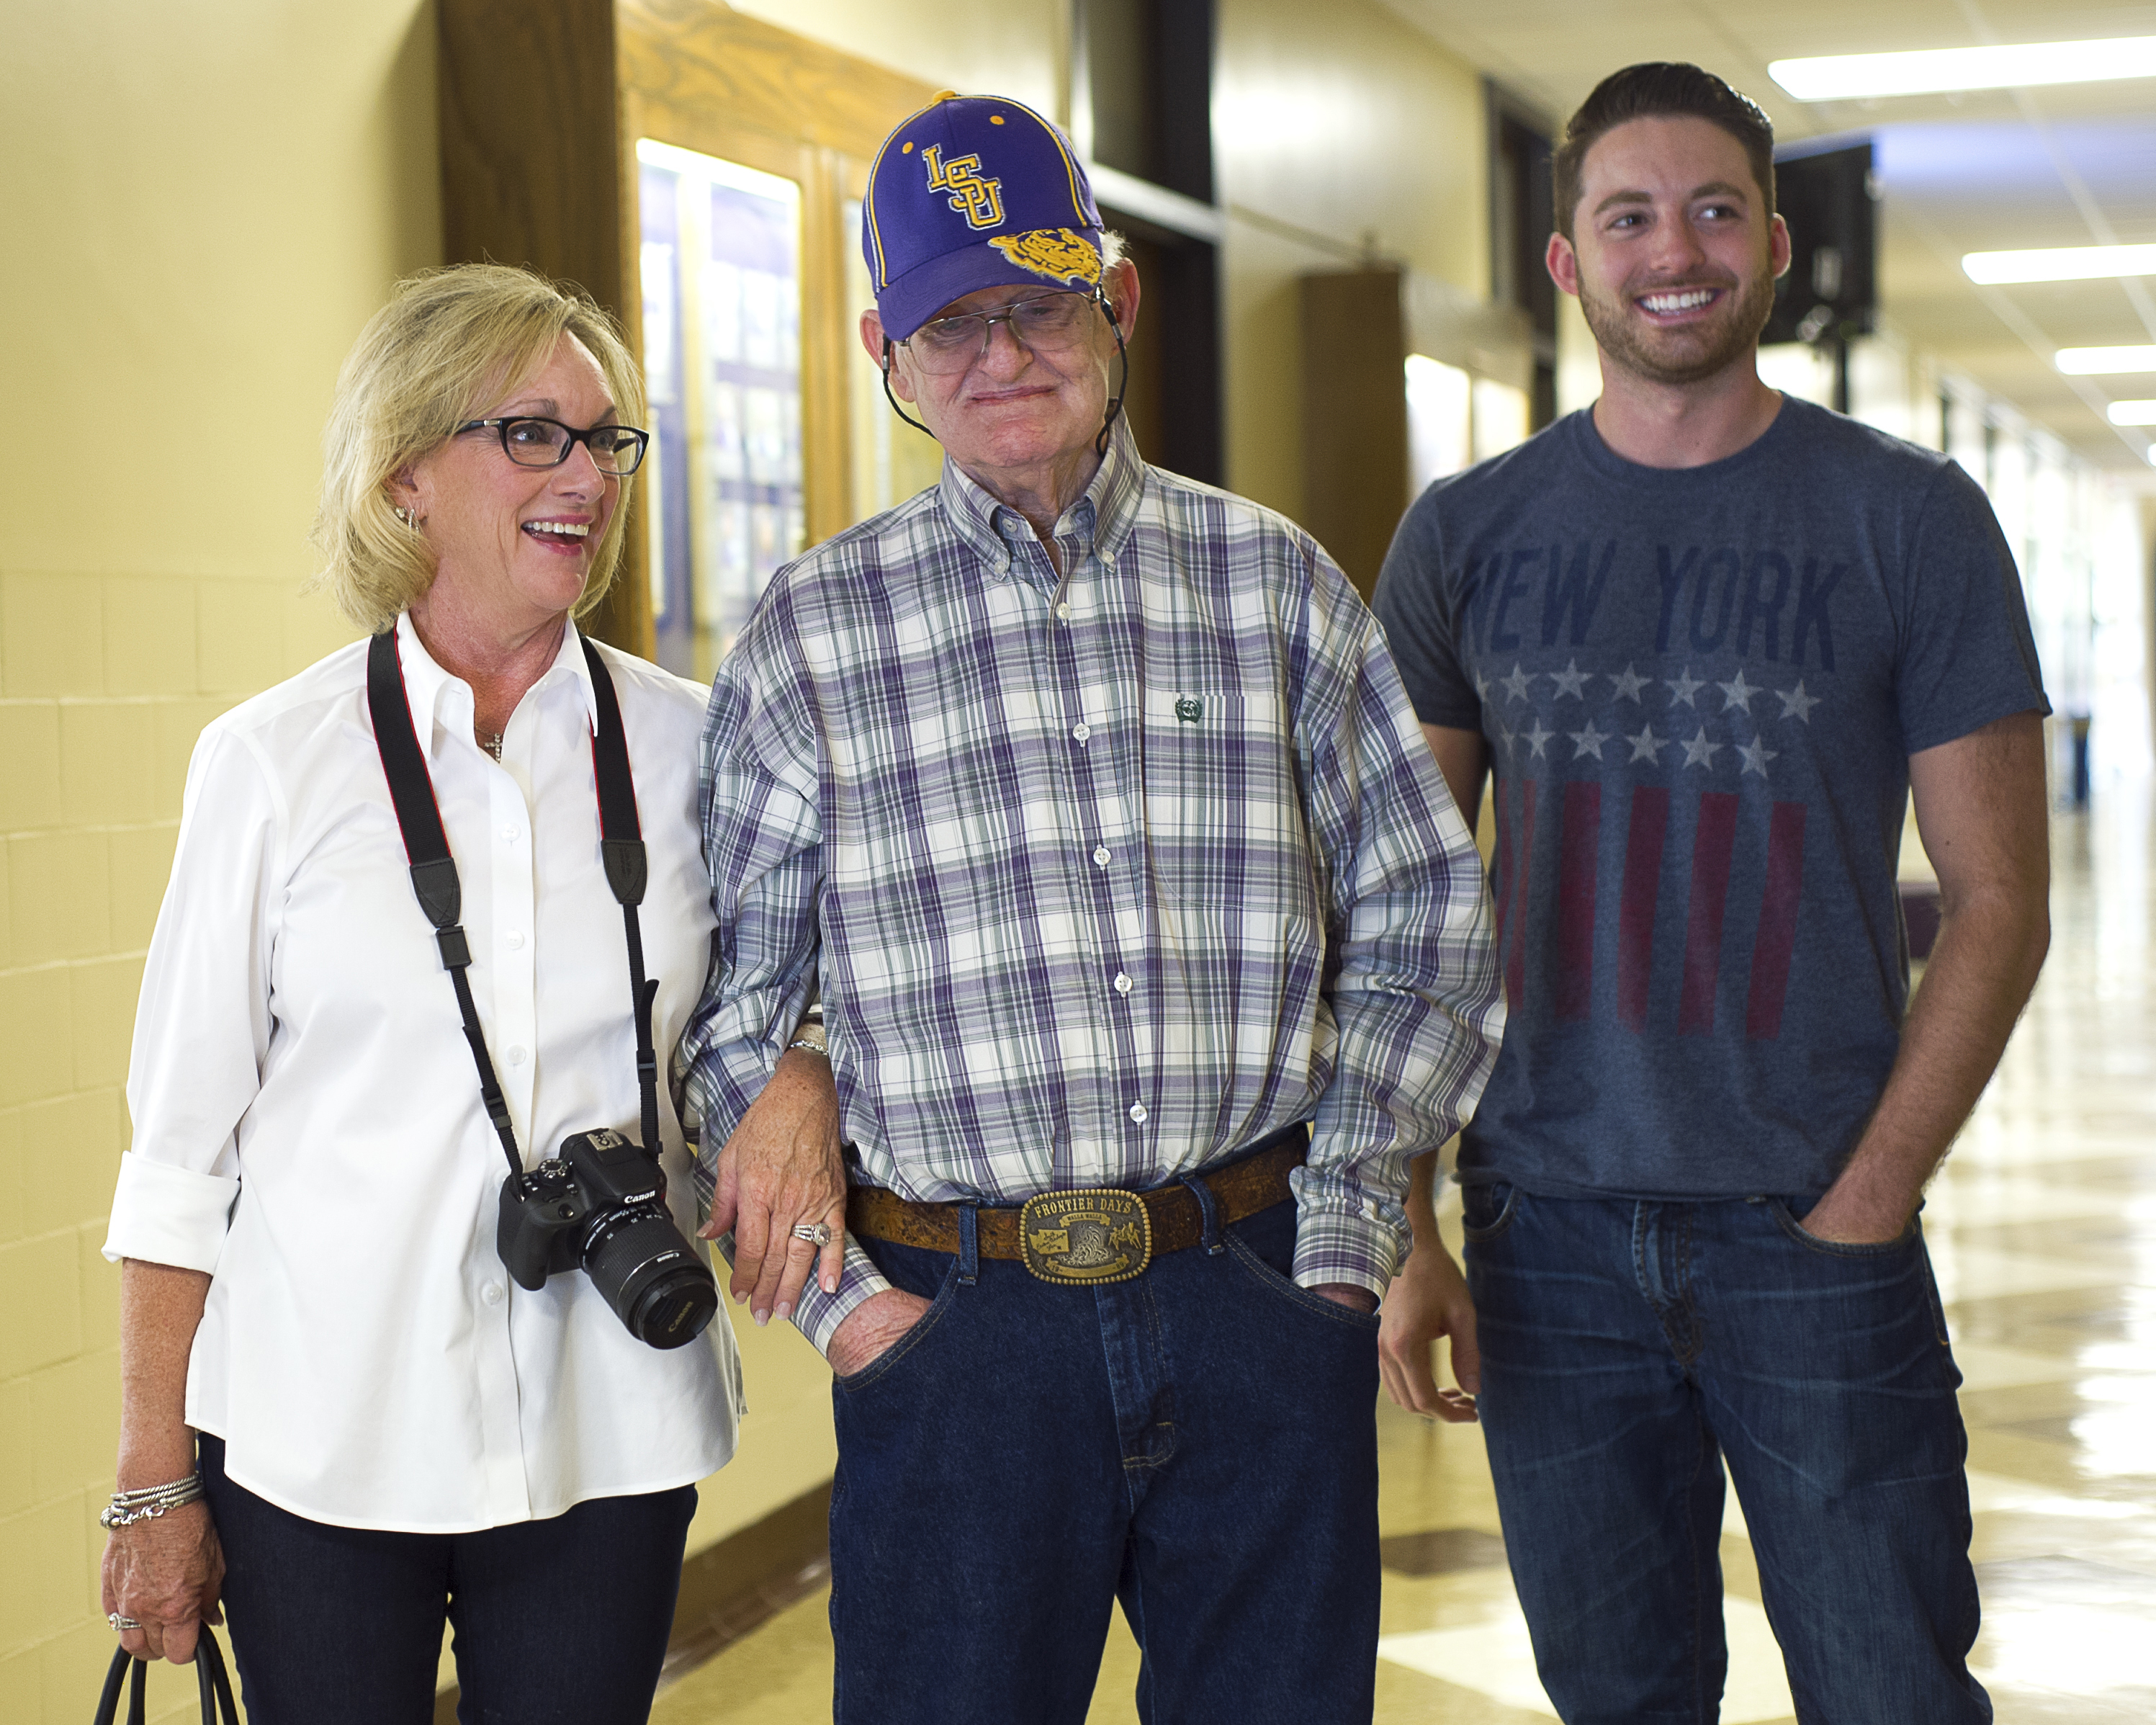 For retired AgCenter agent, visit to LSU campus is a wish come true